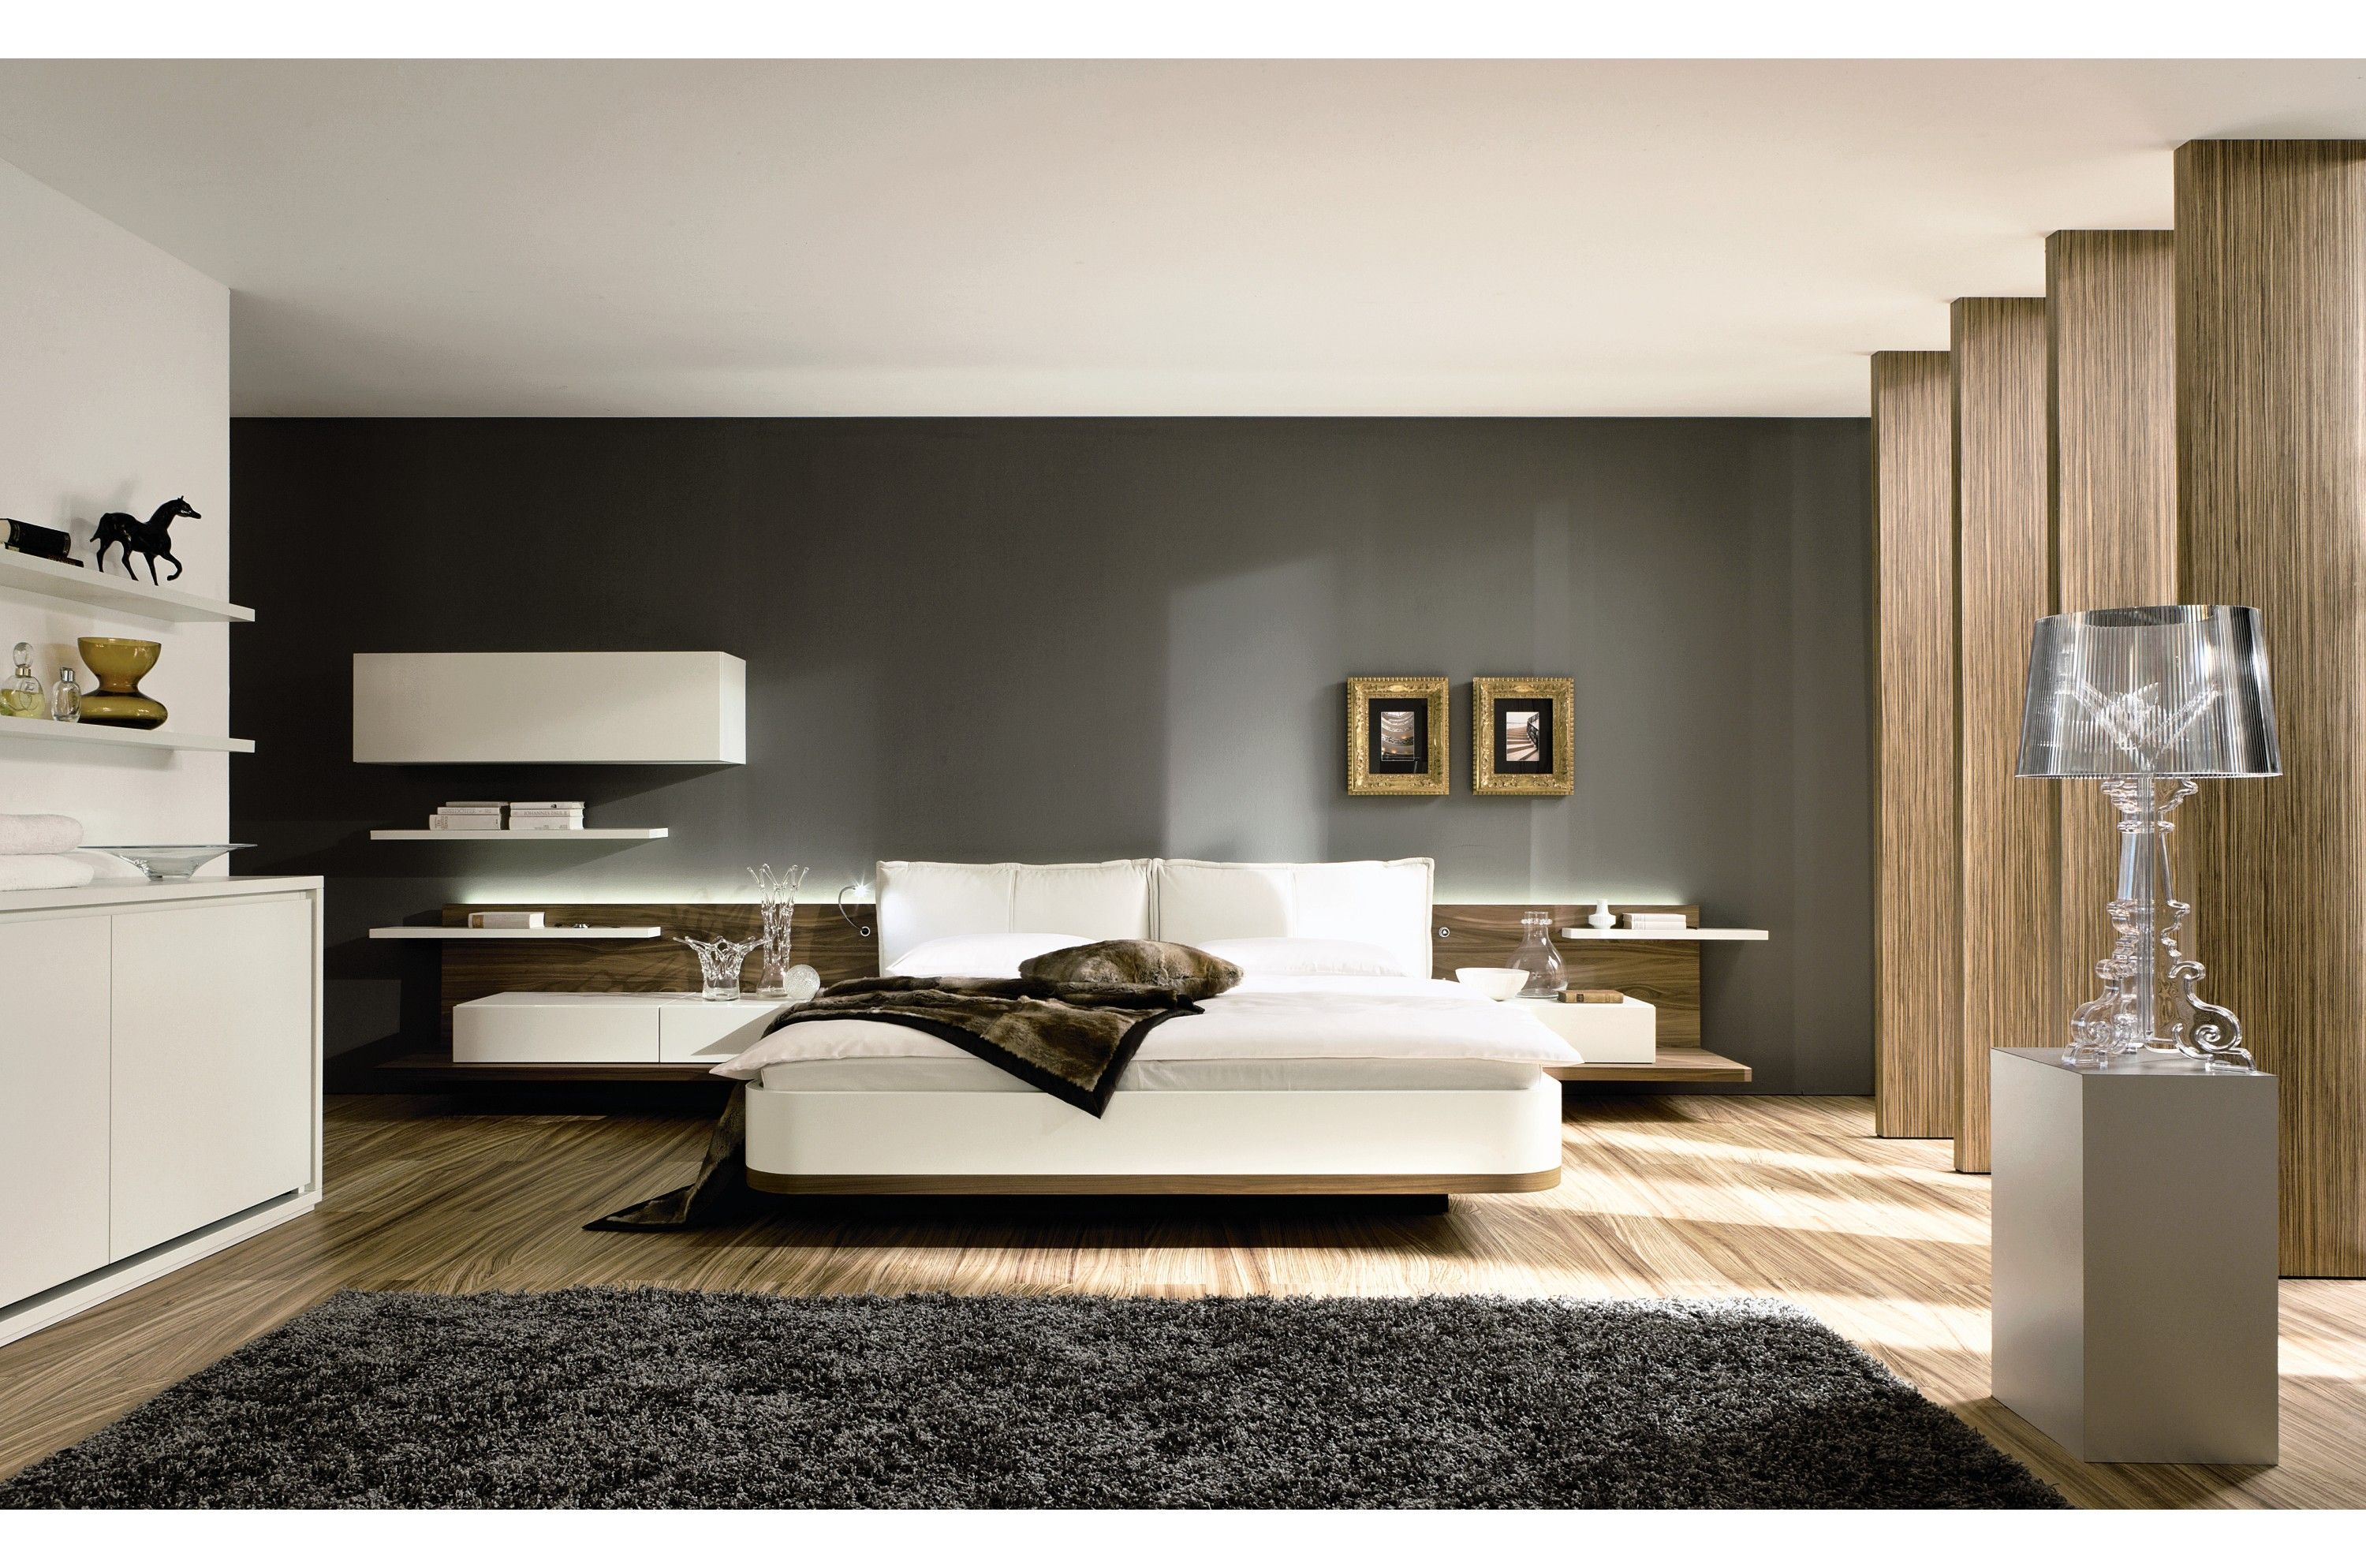 Modern bedroom accessories - Remarkable Contemporary Modern Interior Design Inspiring Contemporary Master Bedroom In White And Dark Grey Color Scheme Black Rug Unique